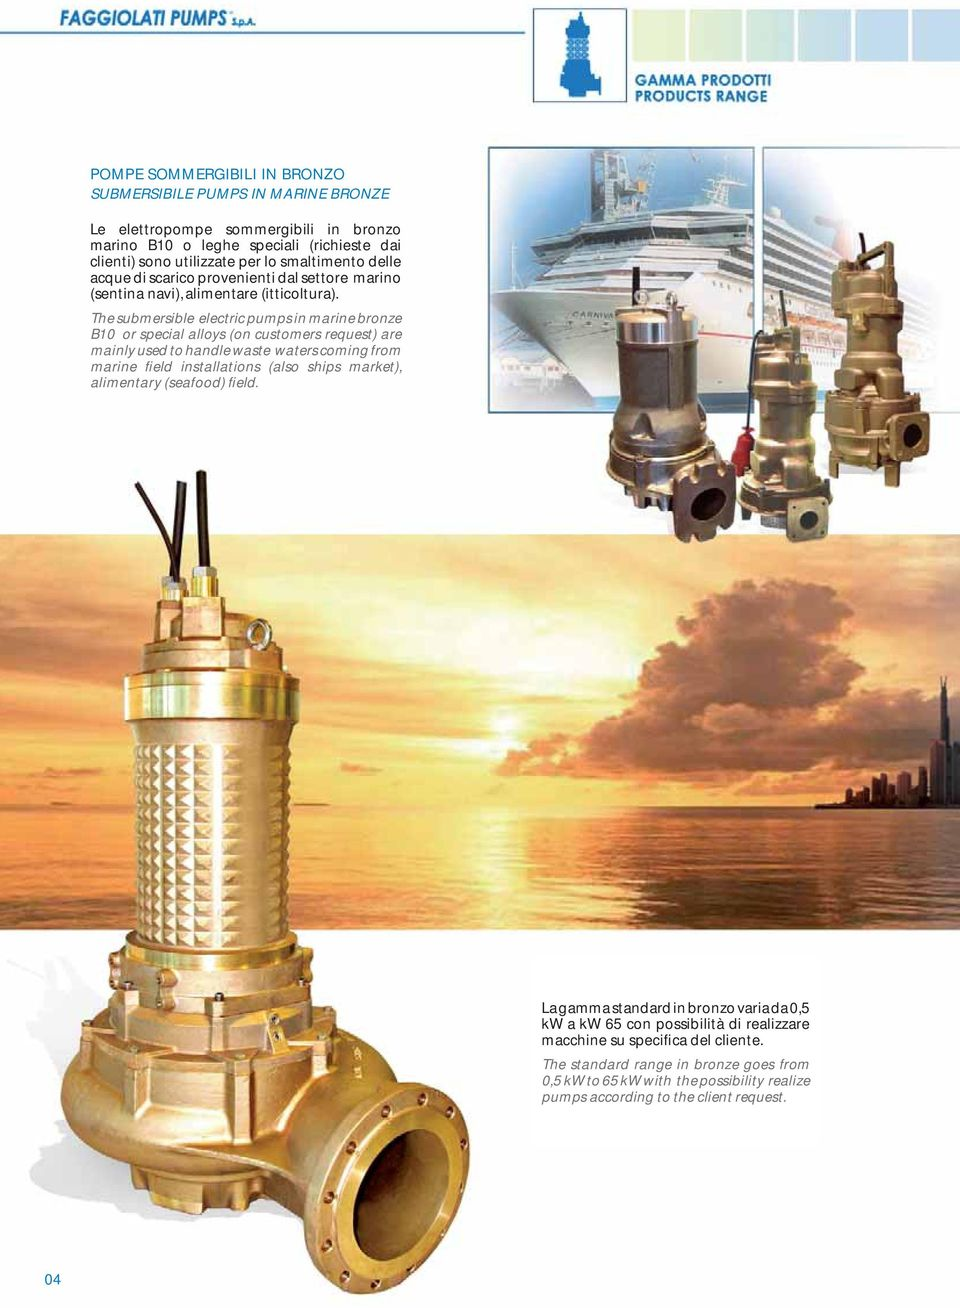 The submersible electric pumps in marine bronze B10 or special alloys (on customers request) are mainly used to handle waste waters coming from marine field installations (also ships